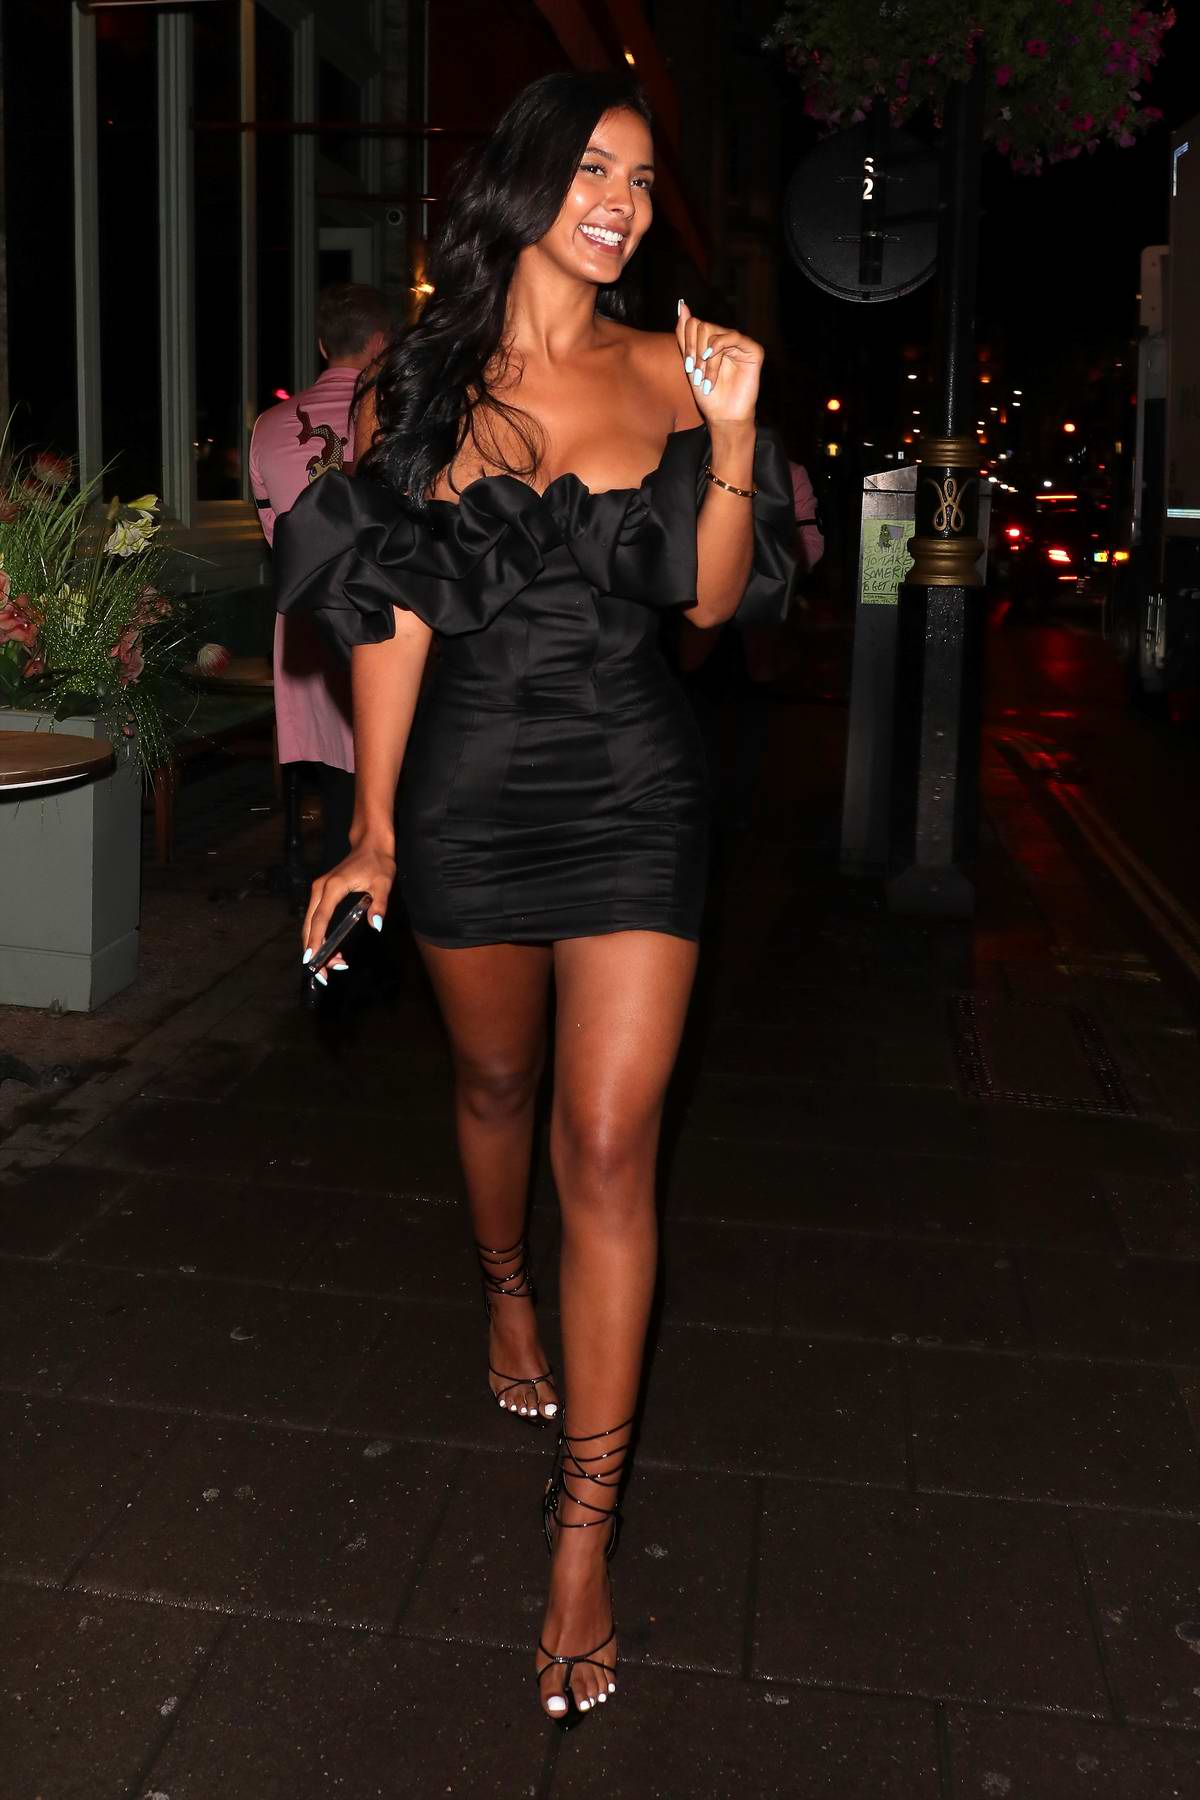 Maya Jama stuns in a short black dress as she celebrates her 25th birthday at Sexy Fish restaurant in Mayfair, London, UK